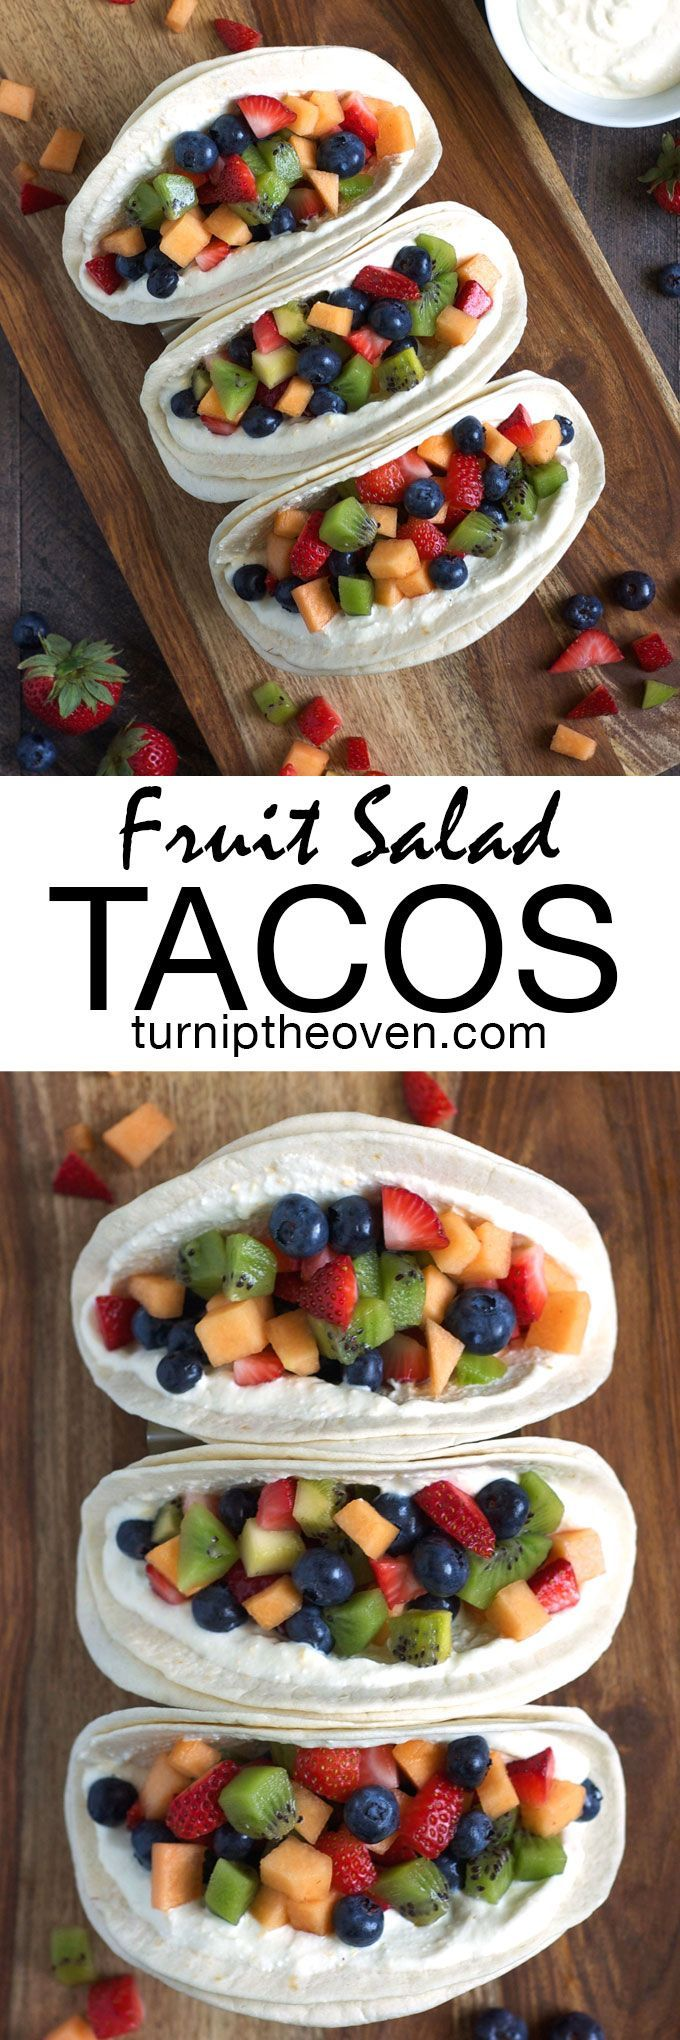 Fit more protein, calcium, and fresh fruit into your morning routine with these easy, healthy breakfast tacos slathered with honey whipped cottage cheese and piled high with fruit salad.